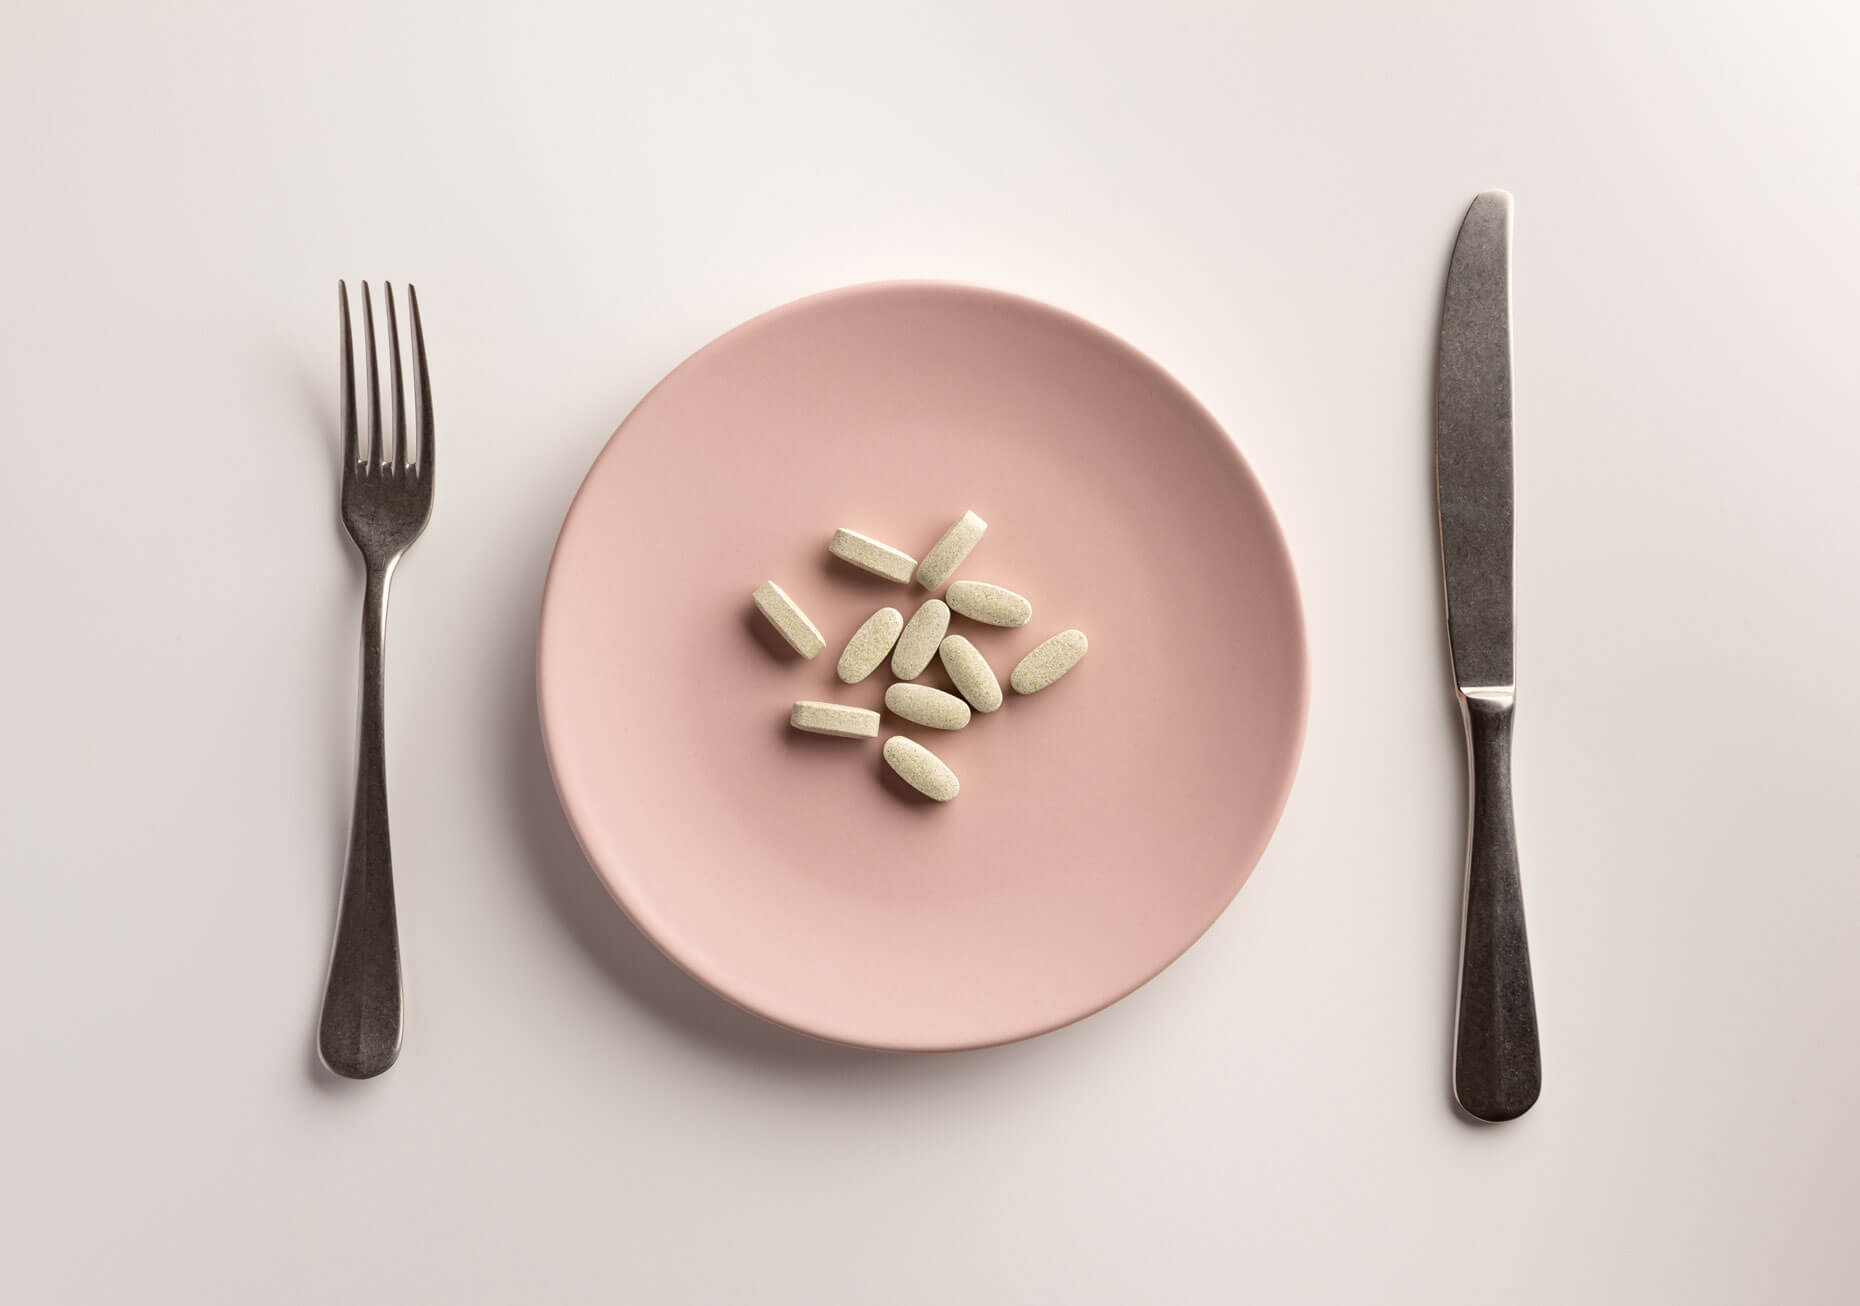 Supplements on a pink plate, with a fork and knife on either side